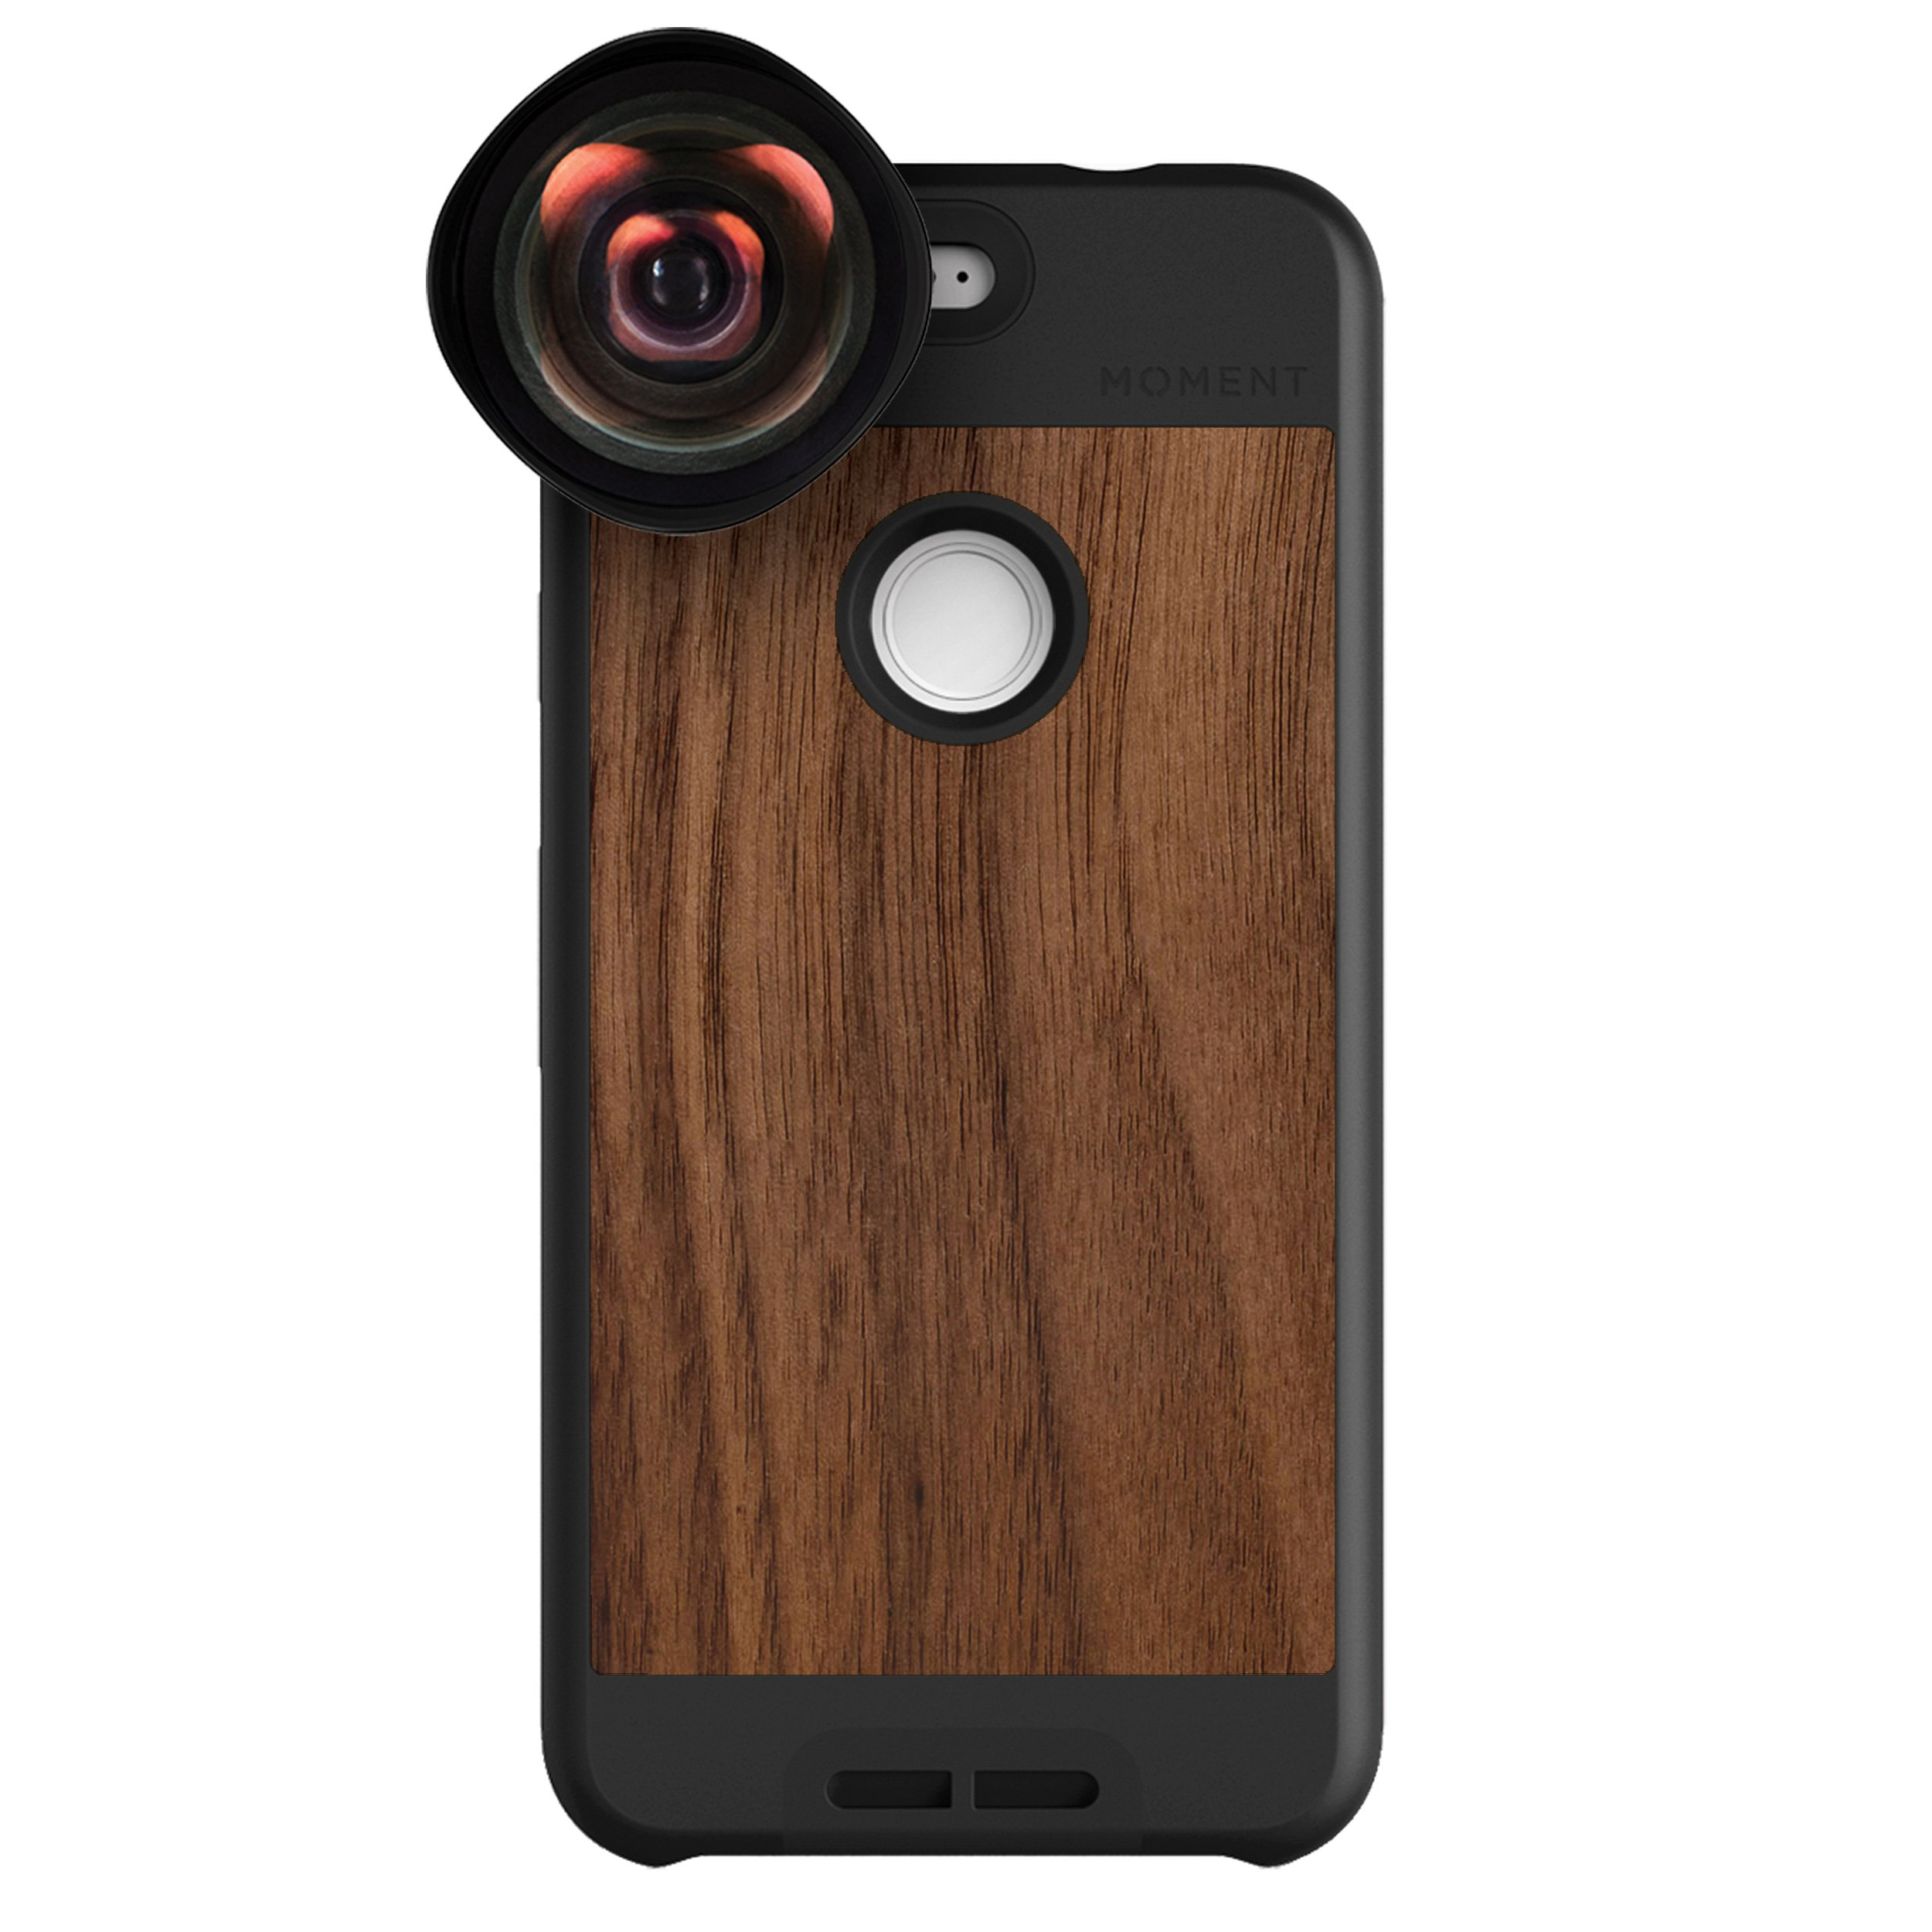 Google Pixel Case with Wide Lens Kit || Moment Walnut Wood Photo Case plus Wide Lens || Best google wide attachment lens with thin protective case. by Moment (Image #1)